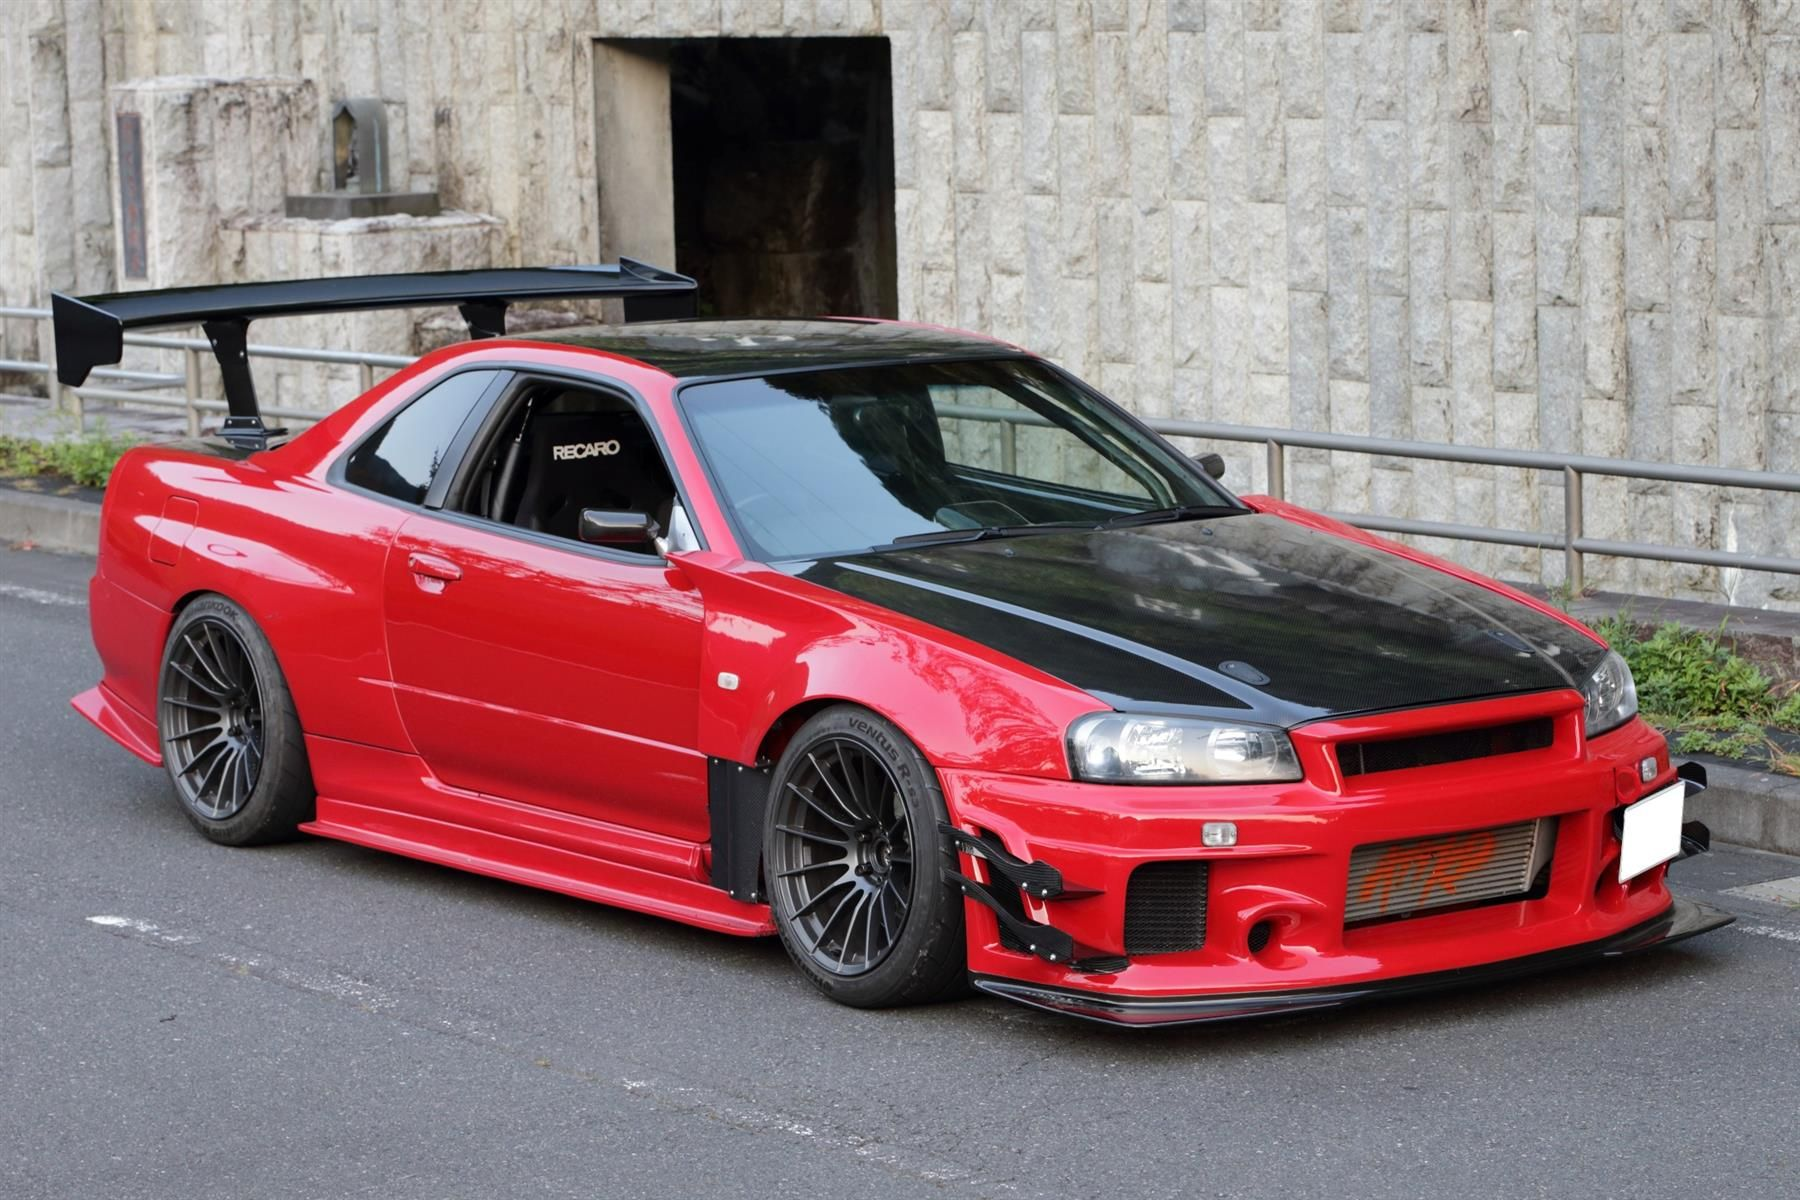 used 1999 nissan skyline r34 for sale in essex pistonheads mot rhead pinterest nissan. Black Bedroom Furniture Sets. Home Design Ideas